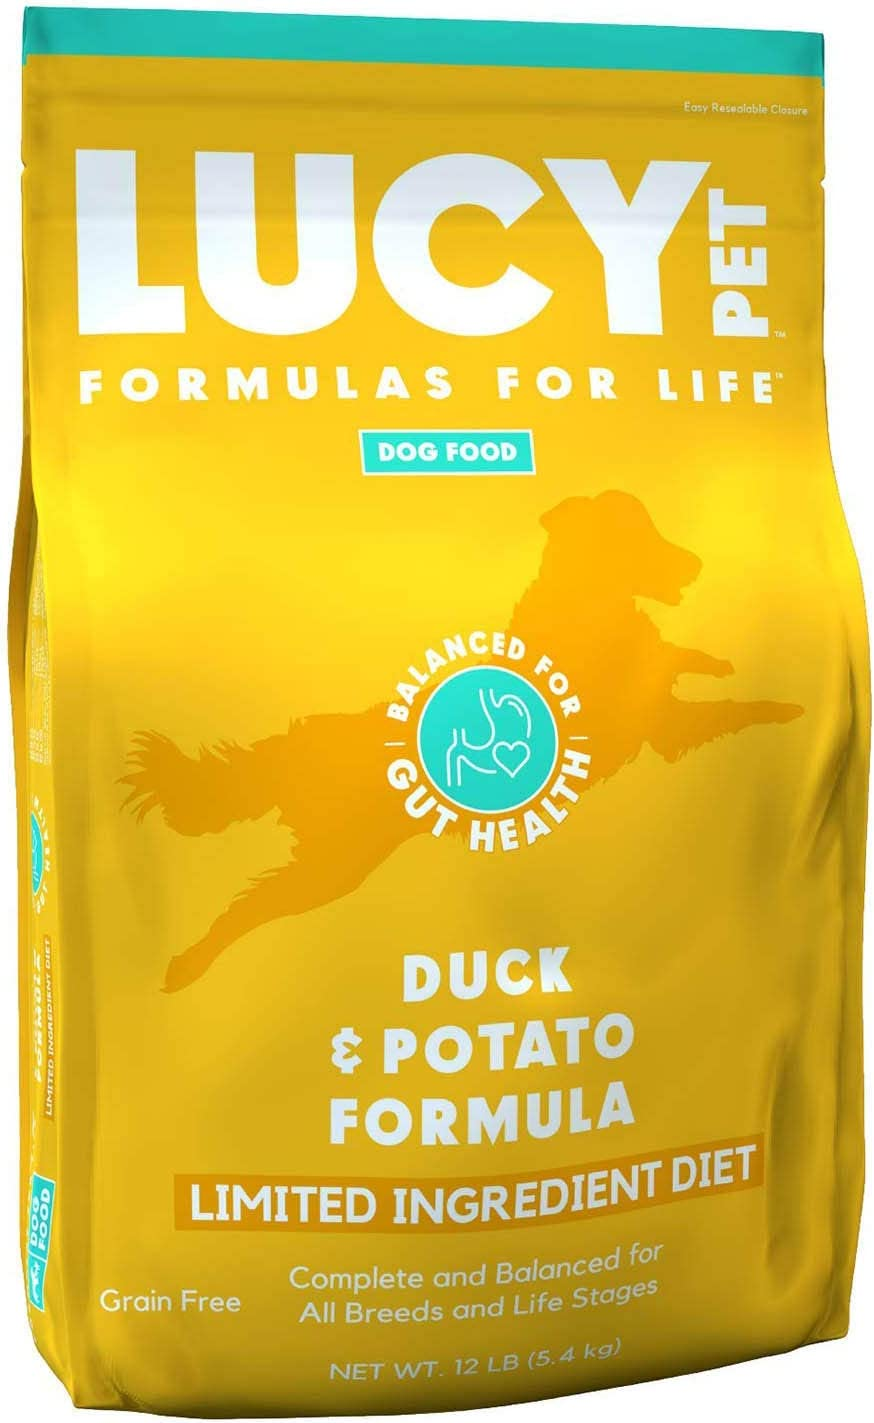 Lucy Pet Products Formulas for Life - Limited Ingredient Diet Dry Dog Food, All Breeds & Life Stages – Duck & Potato, 12 lb